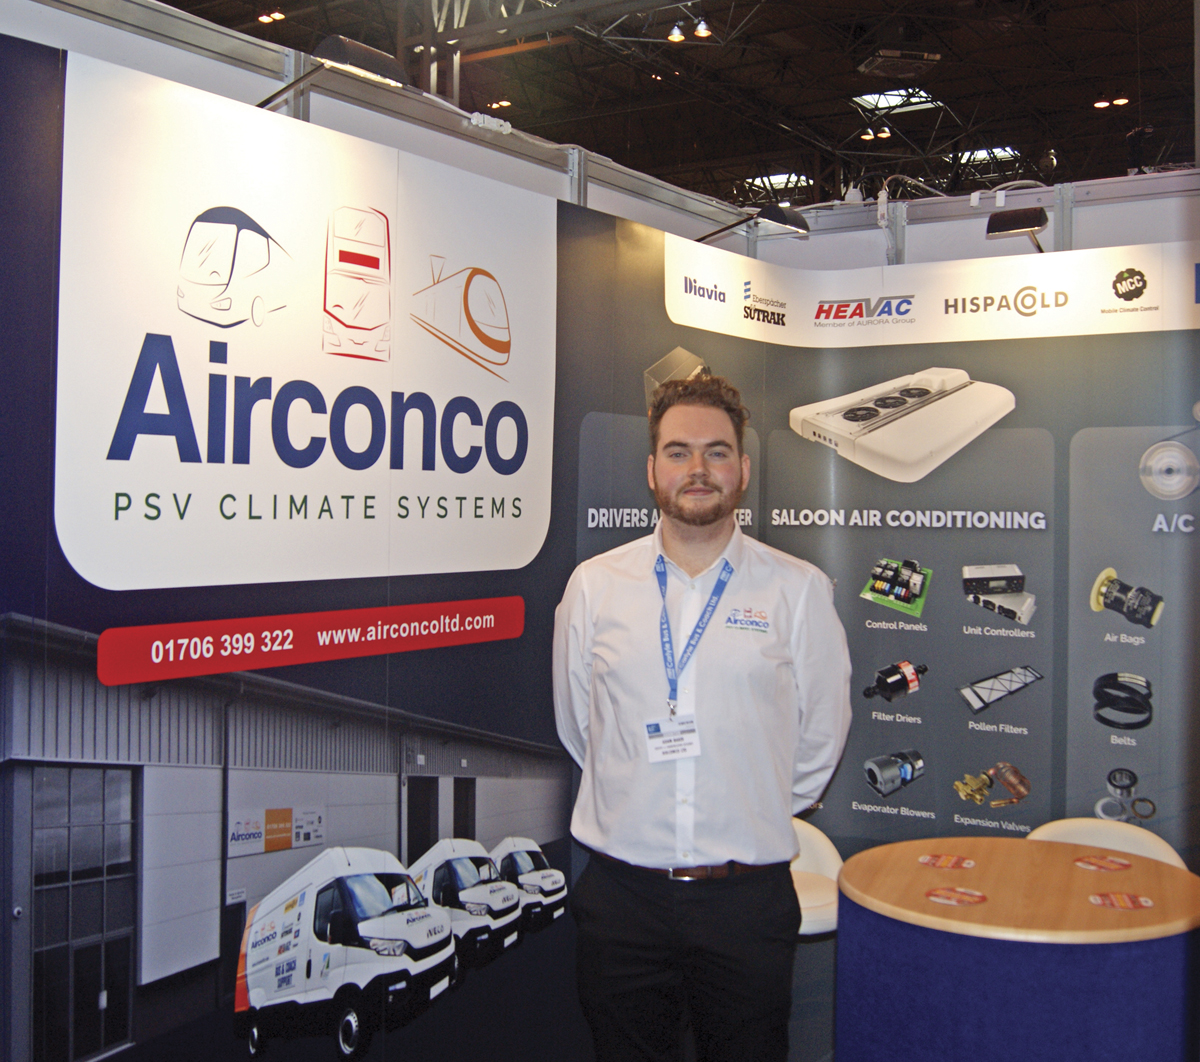 Adam Baker from Airconco alongside his company's new look logo.